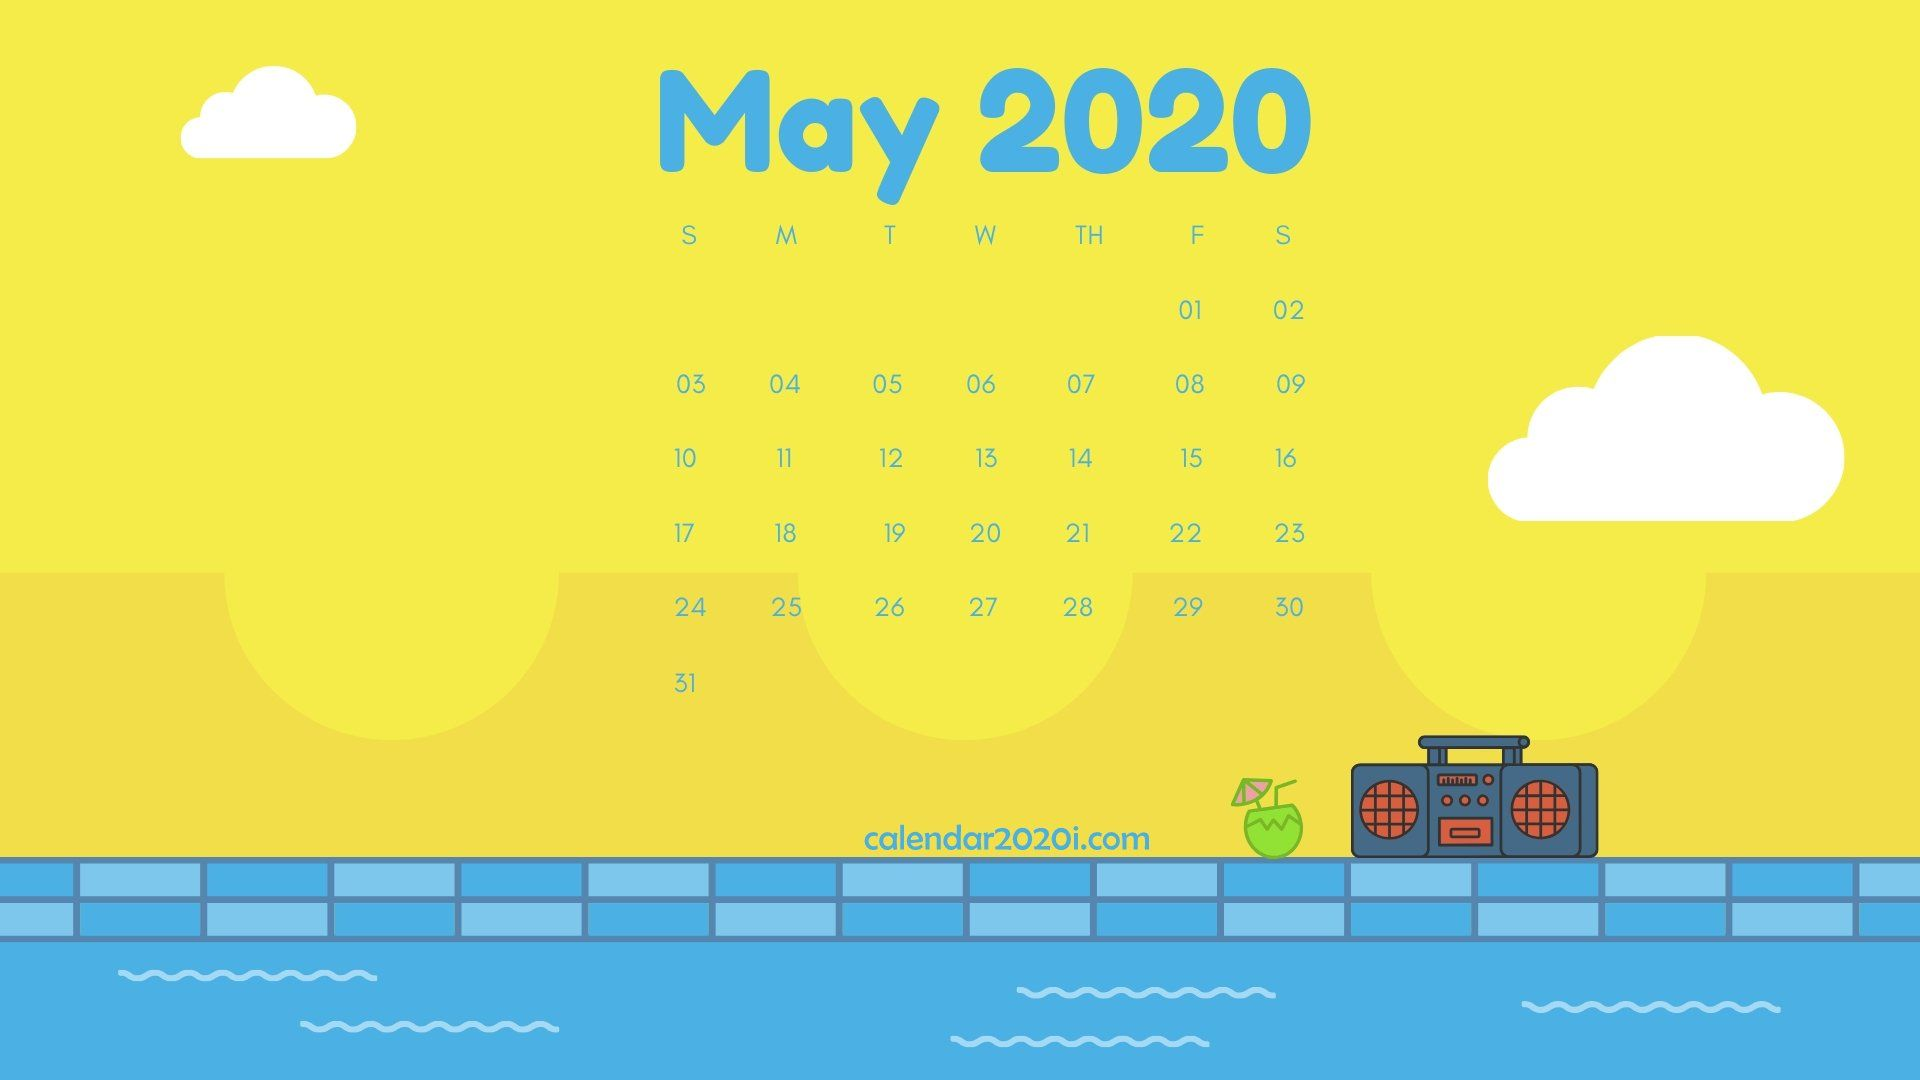 May 2020 Calendar Wallpaper May 2020 Calendar Desktop Wallpaper | Calendar 2020 | Calendar